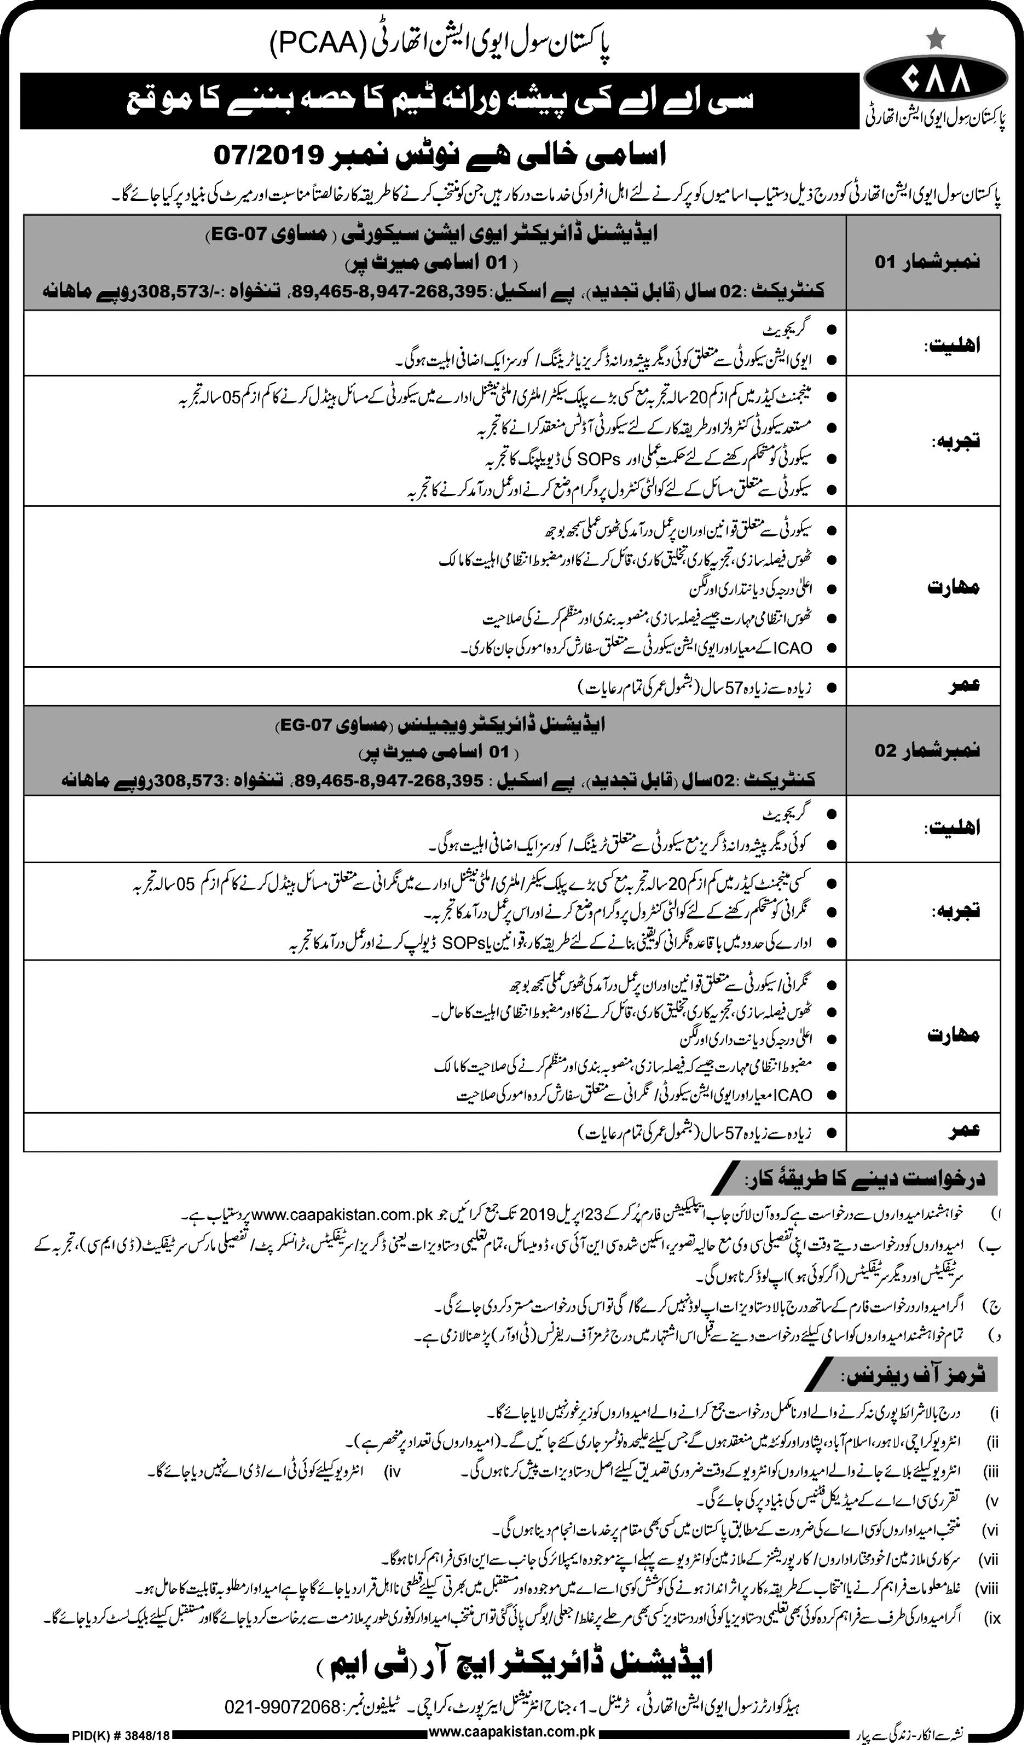 Hbfcl Pakistan Jobs 2019 For Management Posts On 28 January